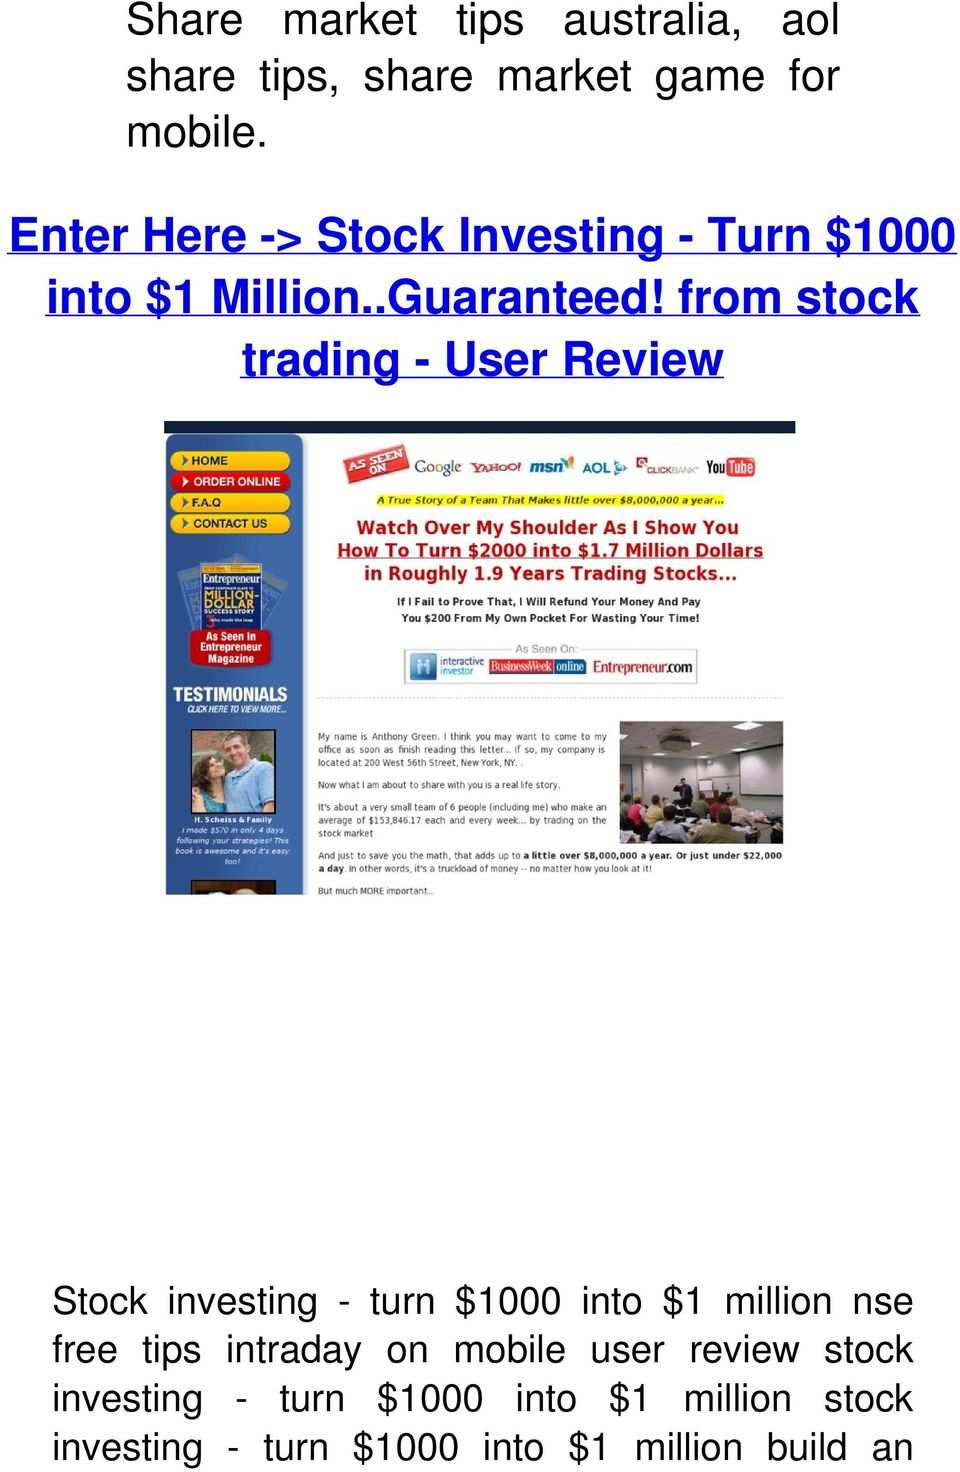 from stock trading - User Review Stock investing - turn $1000 into $1 million nse free tips